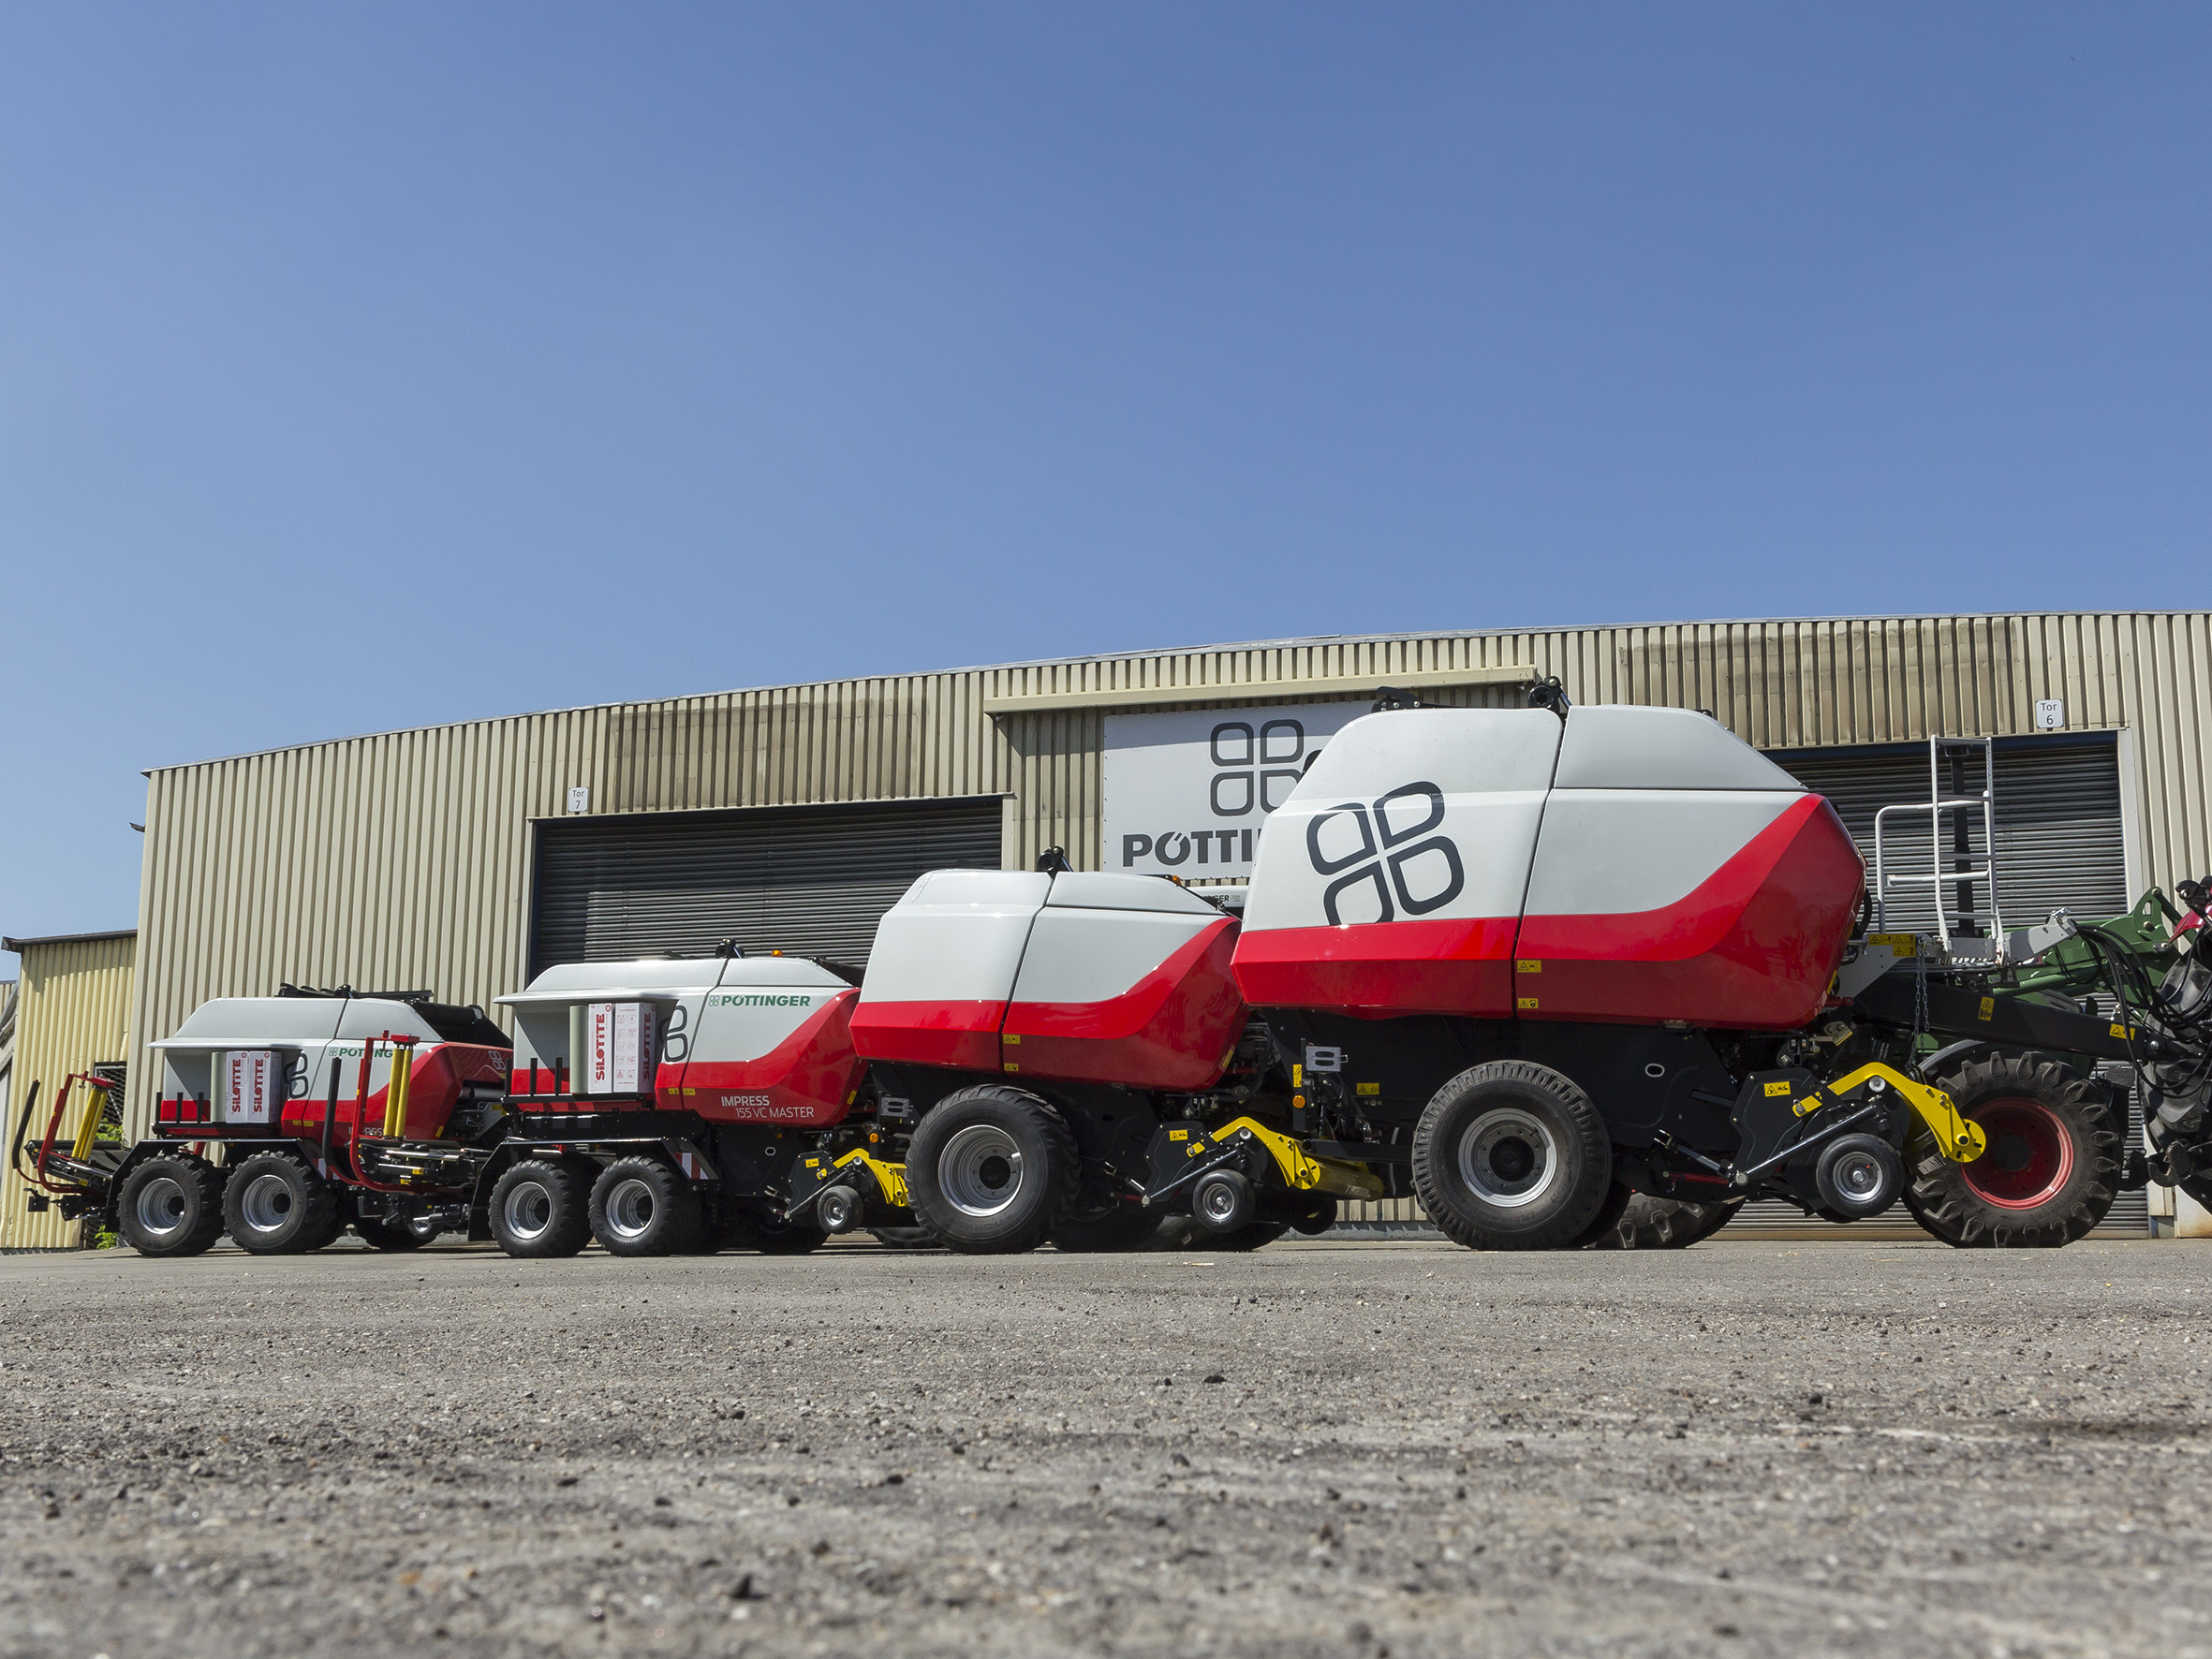 Pottinger Grassland Impress Balers